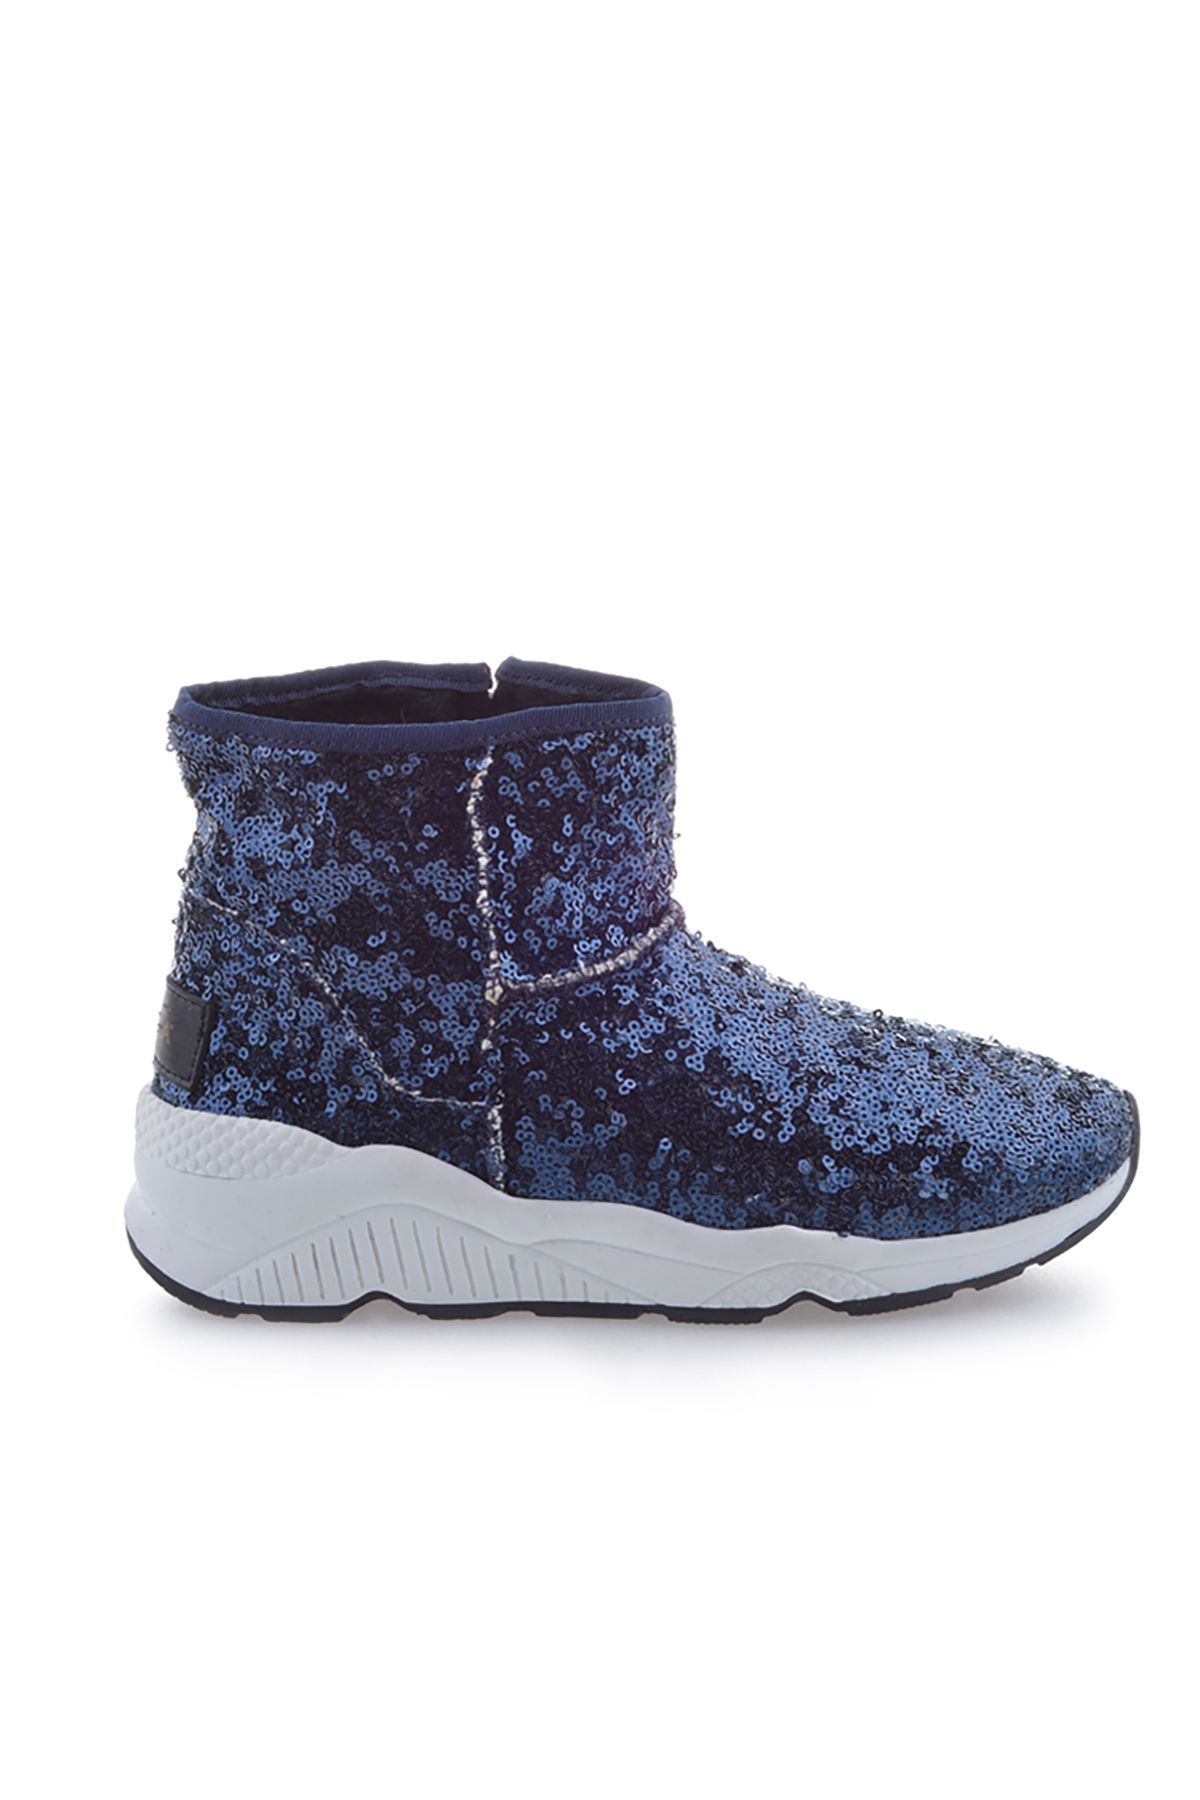 Pegia Women Boots From Genuine Suede And Fur With Side Zip 157805 Navy blue